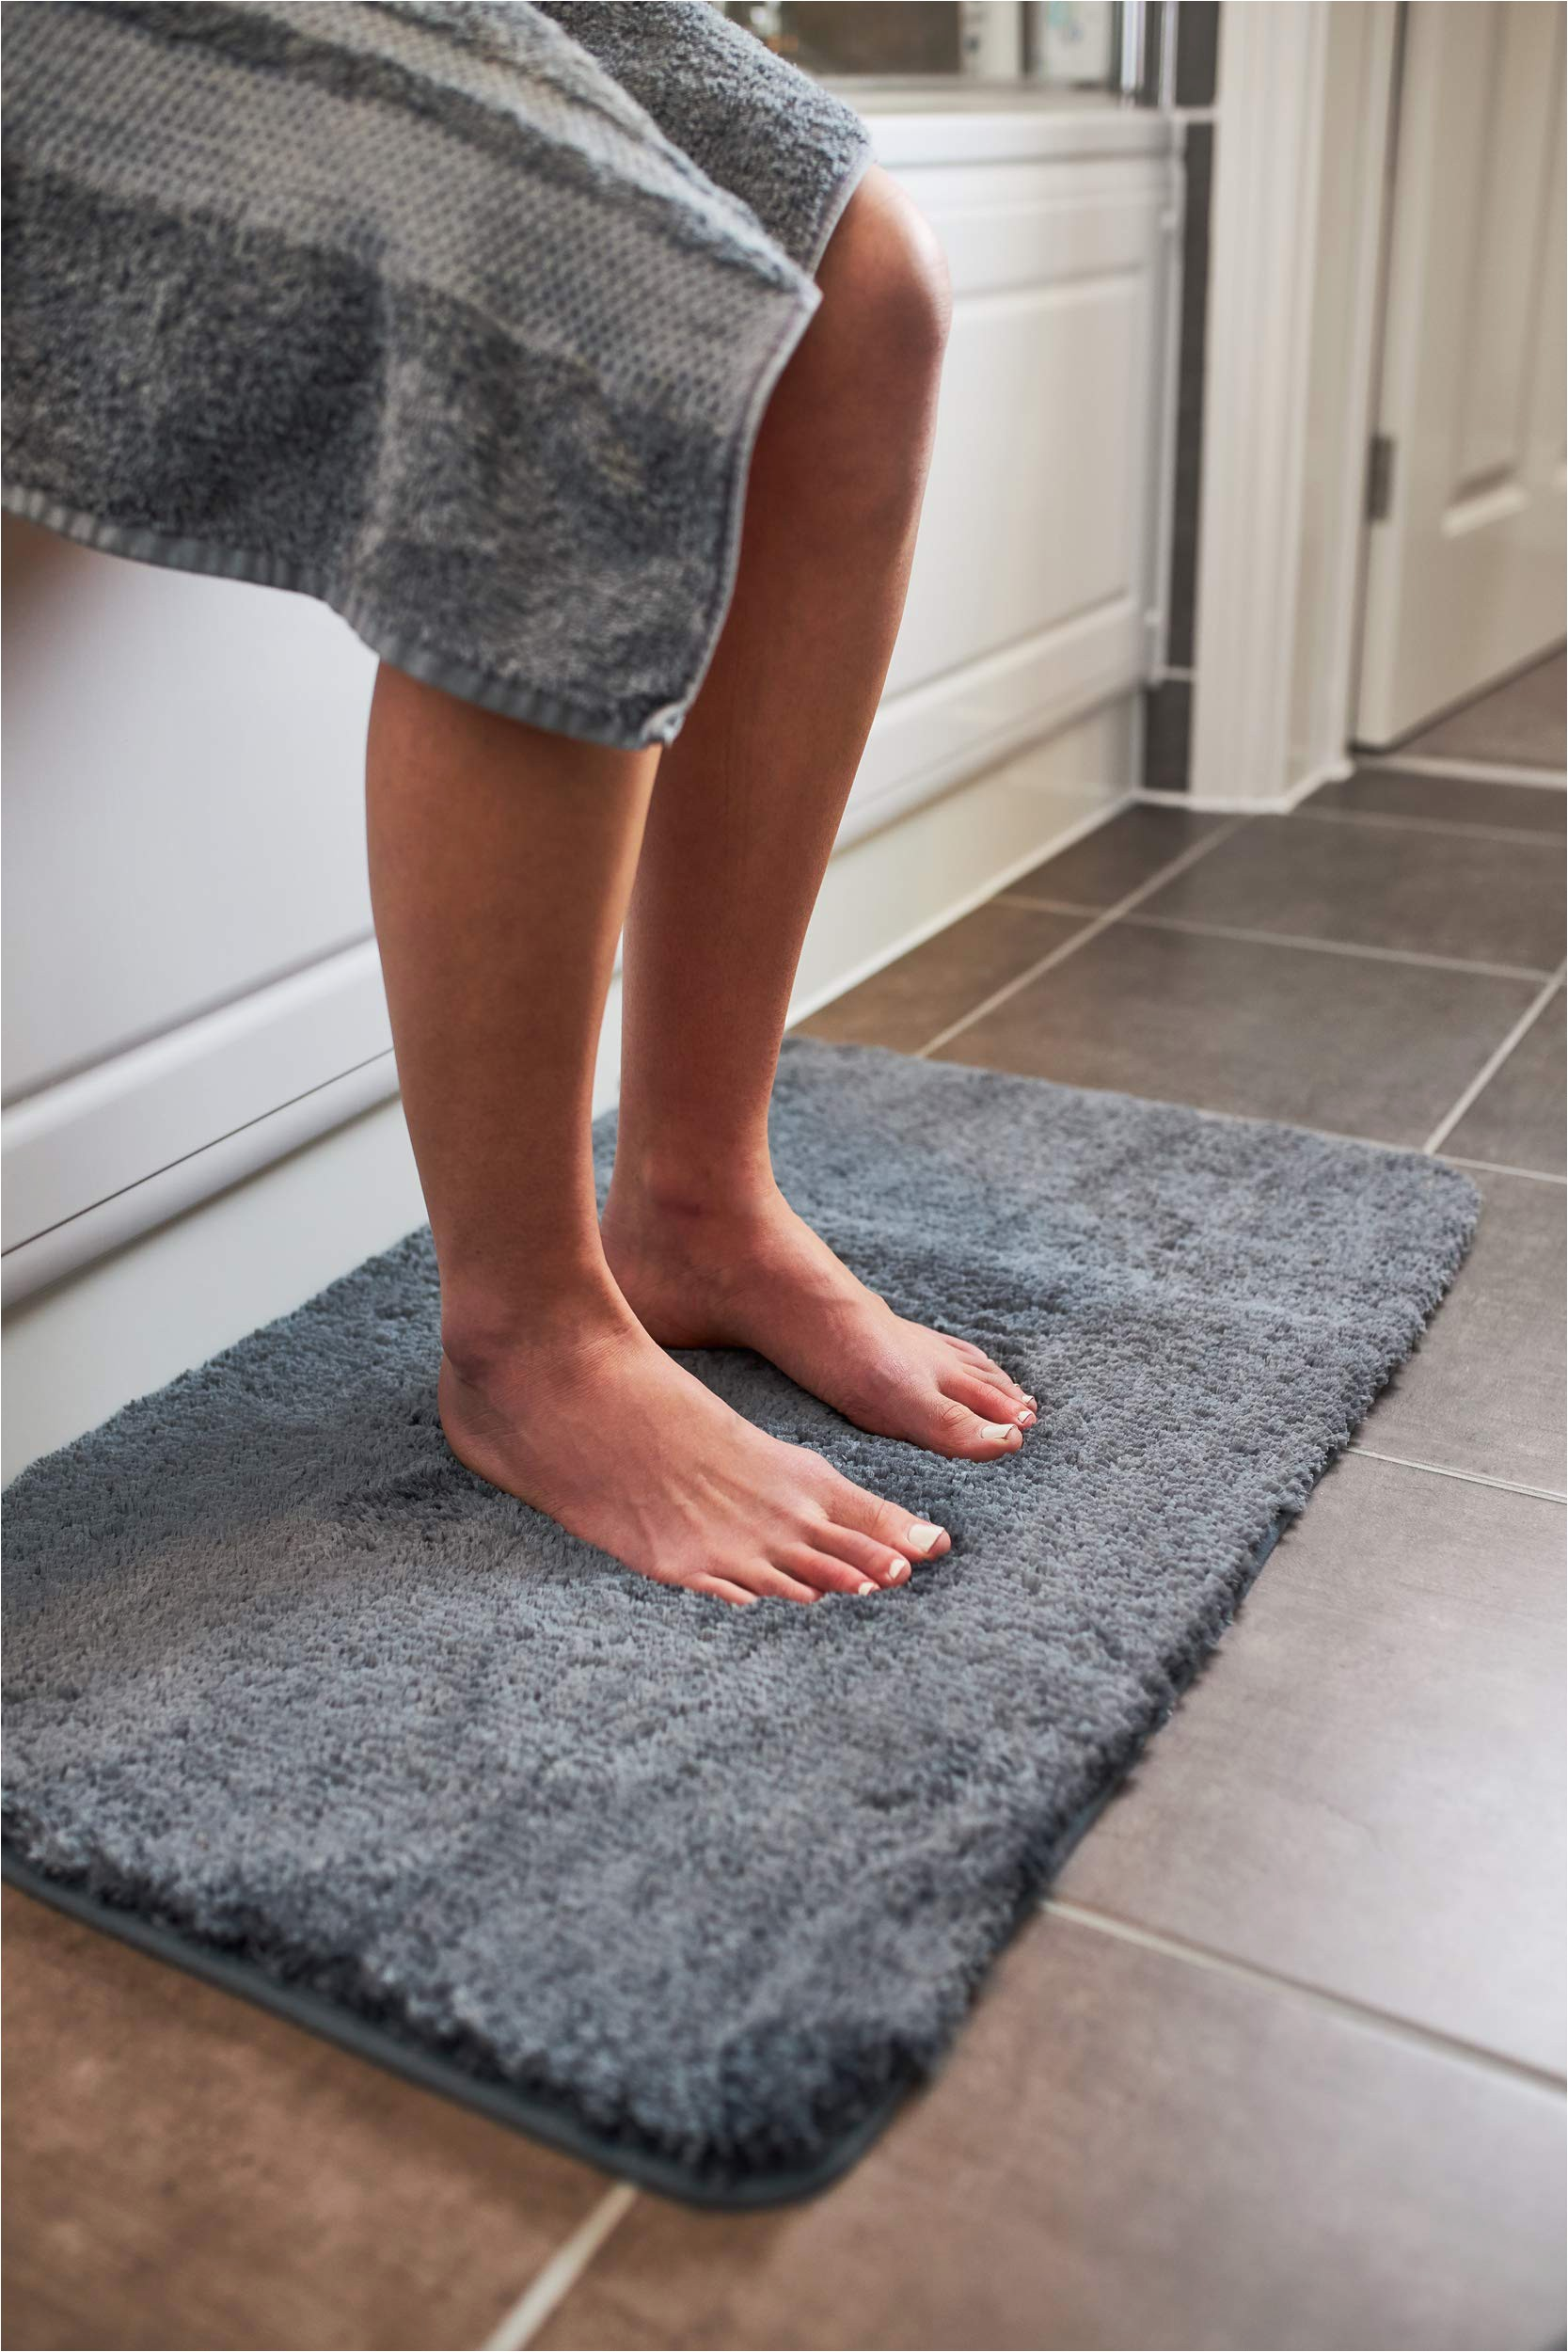 Grey Bath Rugs and towels Luxury Grey Bath Mat Microfiber Non Slip Bath Rug with Super soft Absorbent Dry Fast Design for Bath and Shower